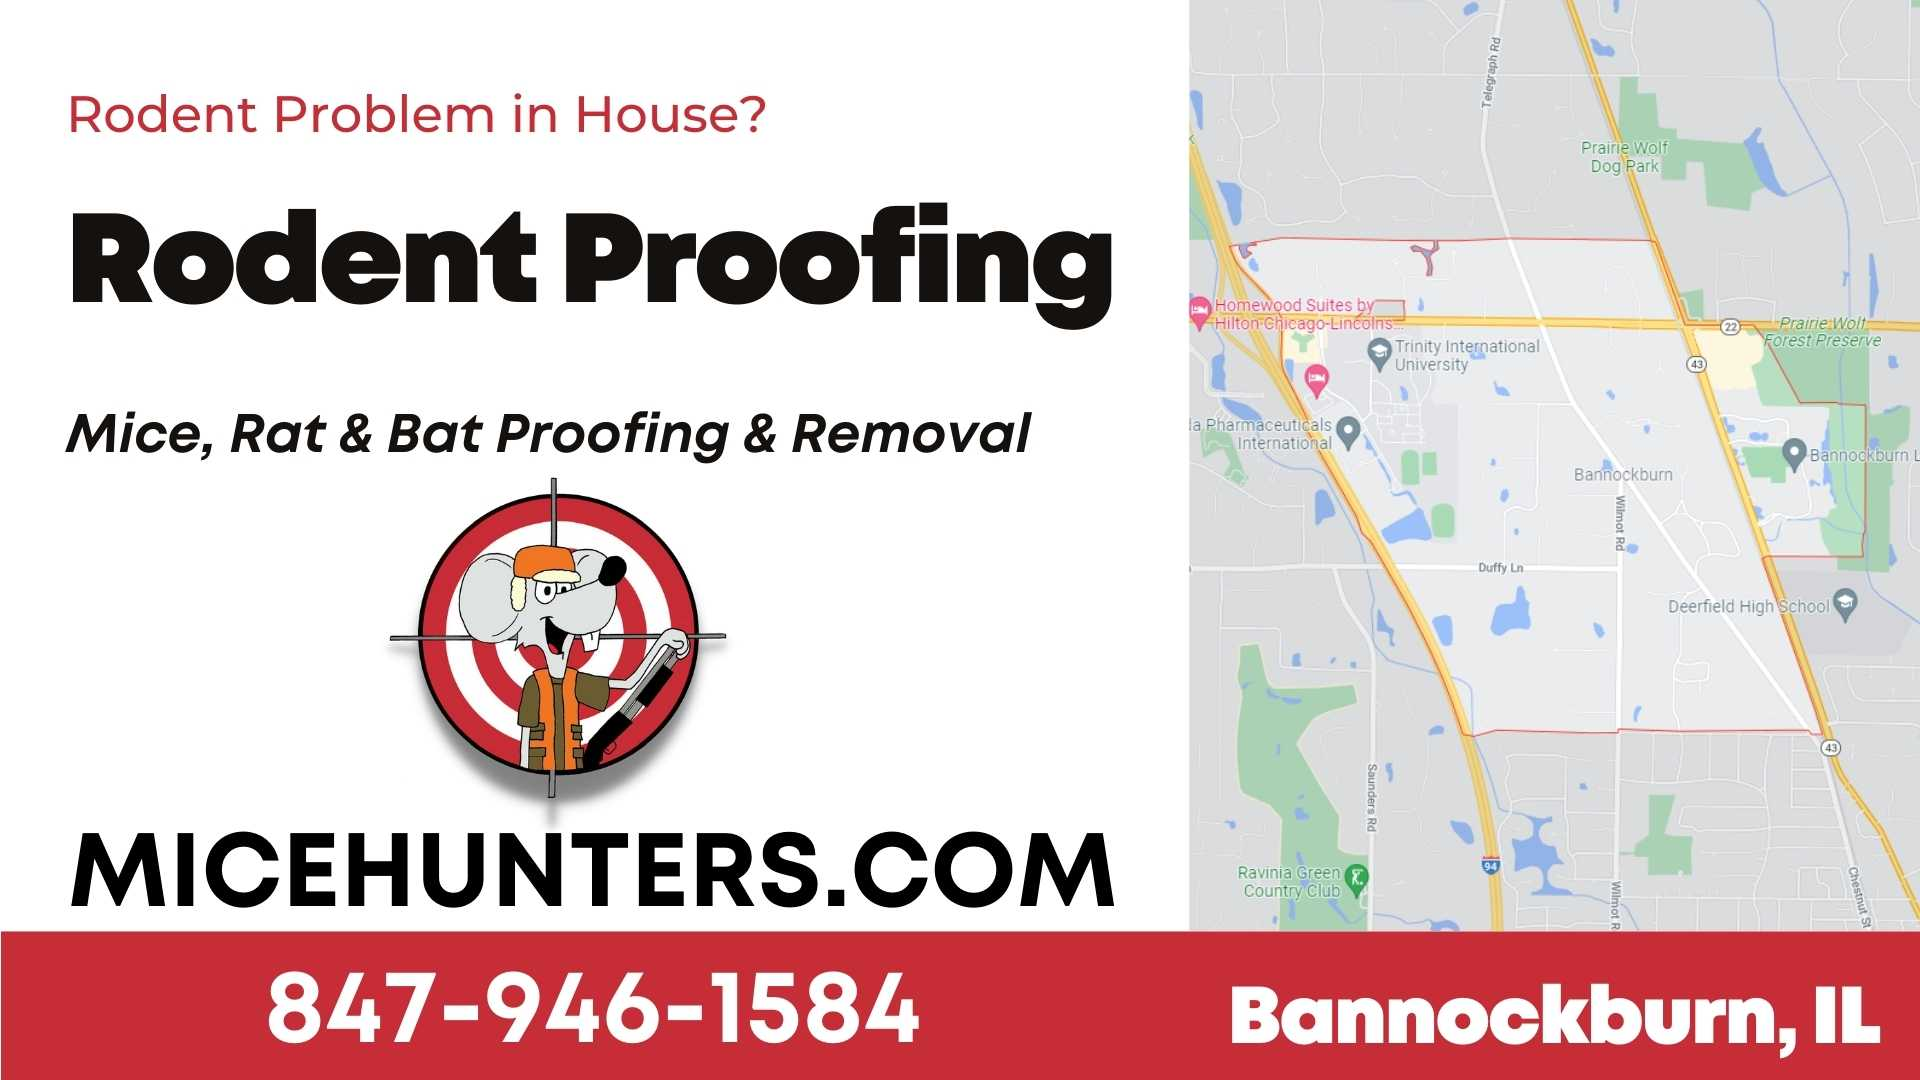 Bannockburn Rodent and Mice Proofing Exterminator near me